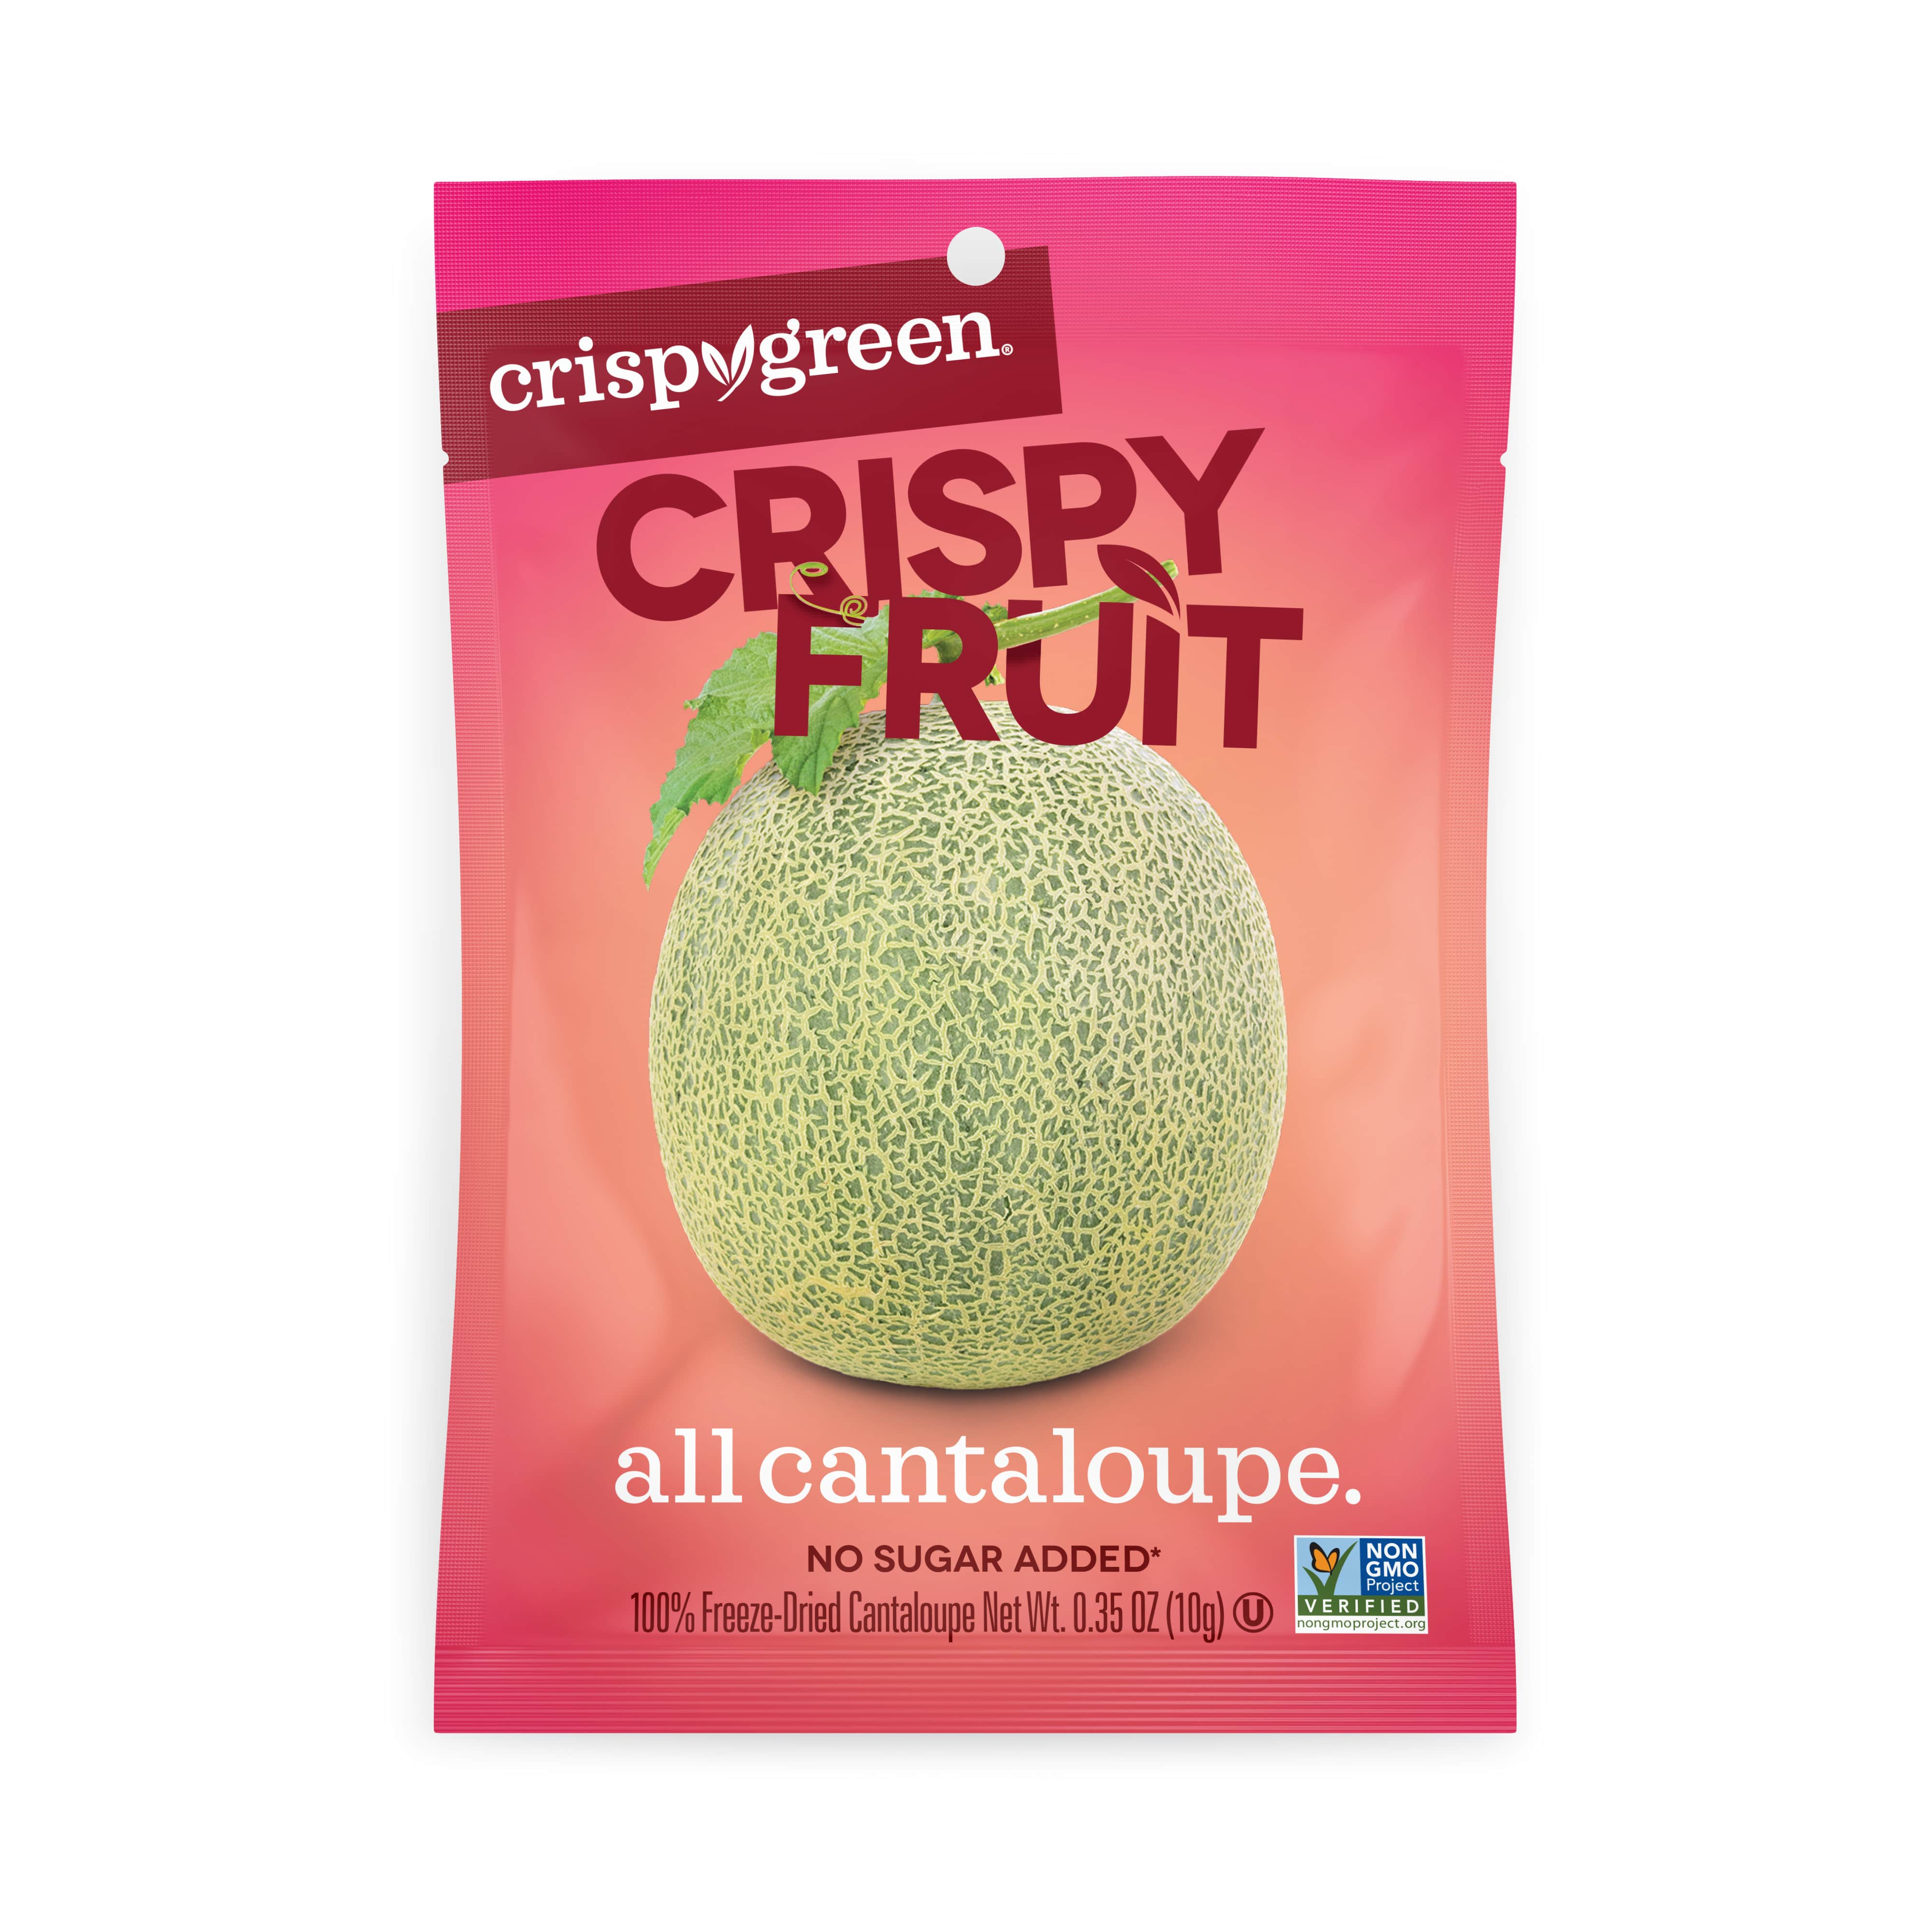 Crispy Green Launches New Brand and Packaging